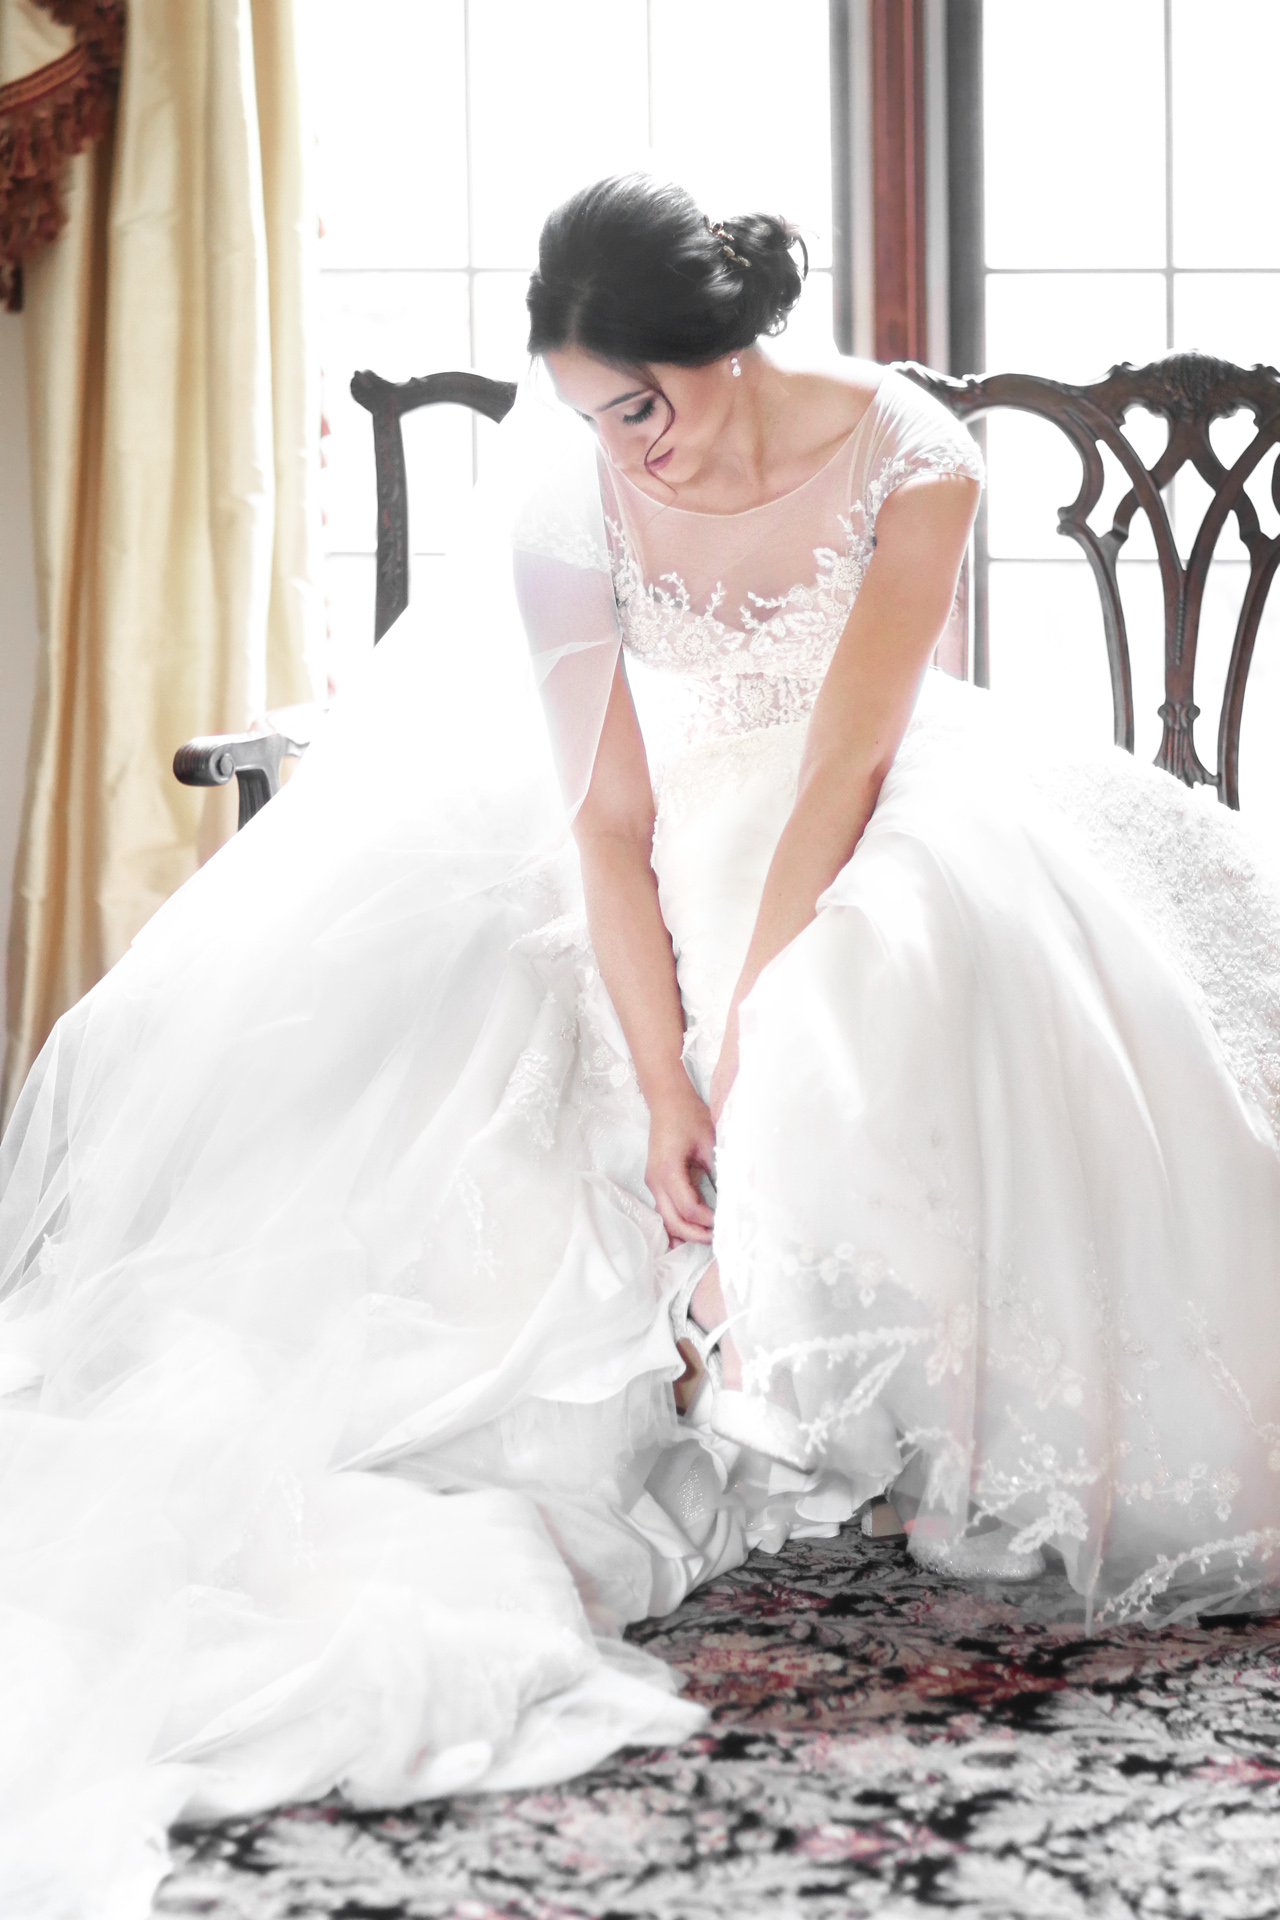 bridal putting on wedding shoes